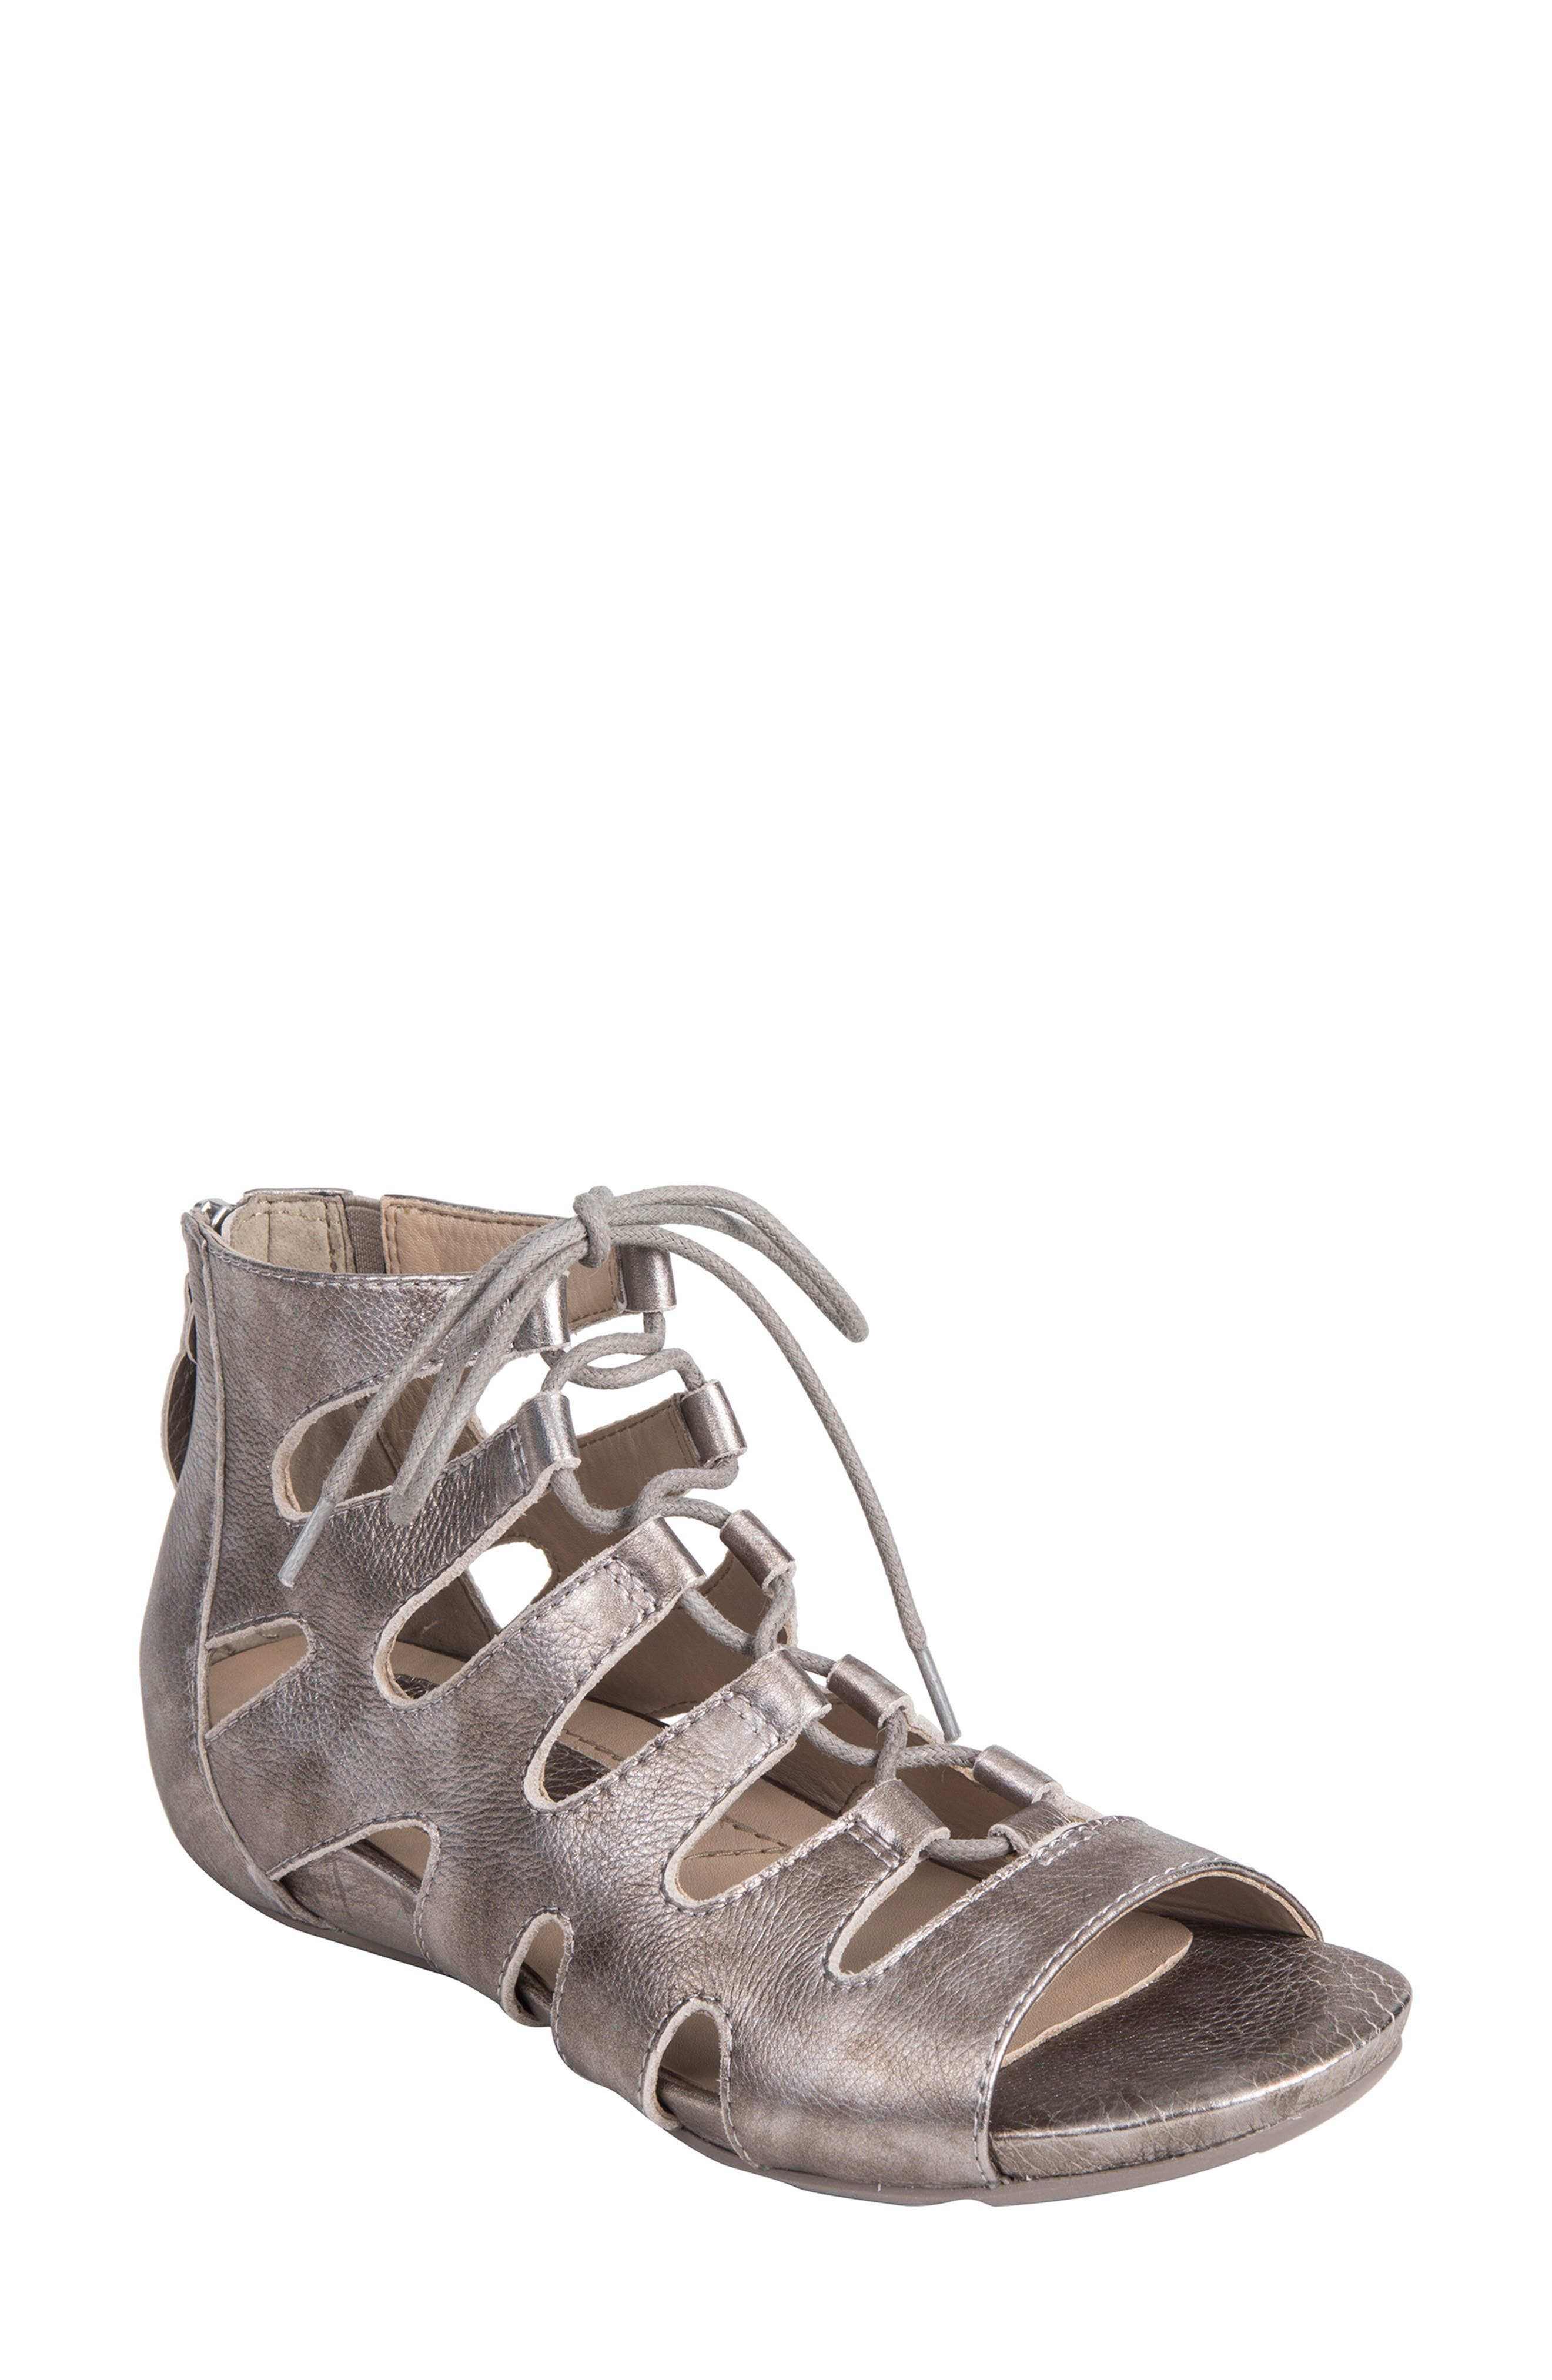 Roma Cage Sandal,                         Main,                         color, 040